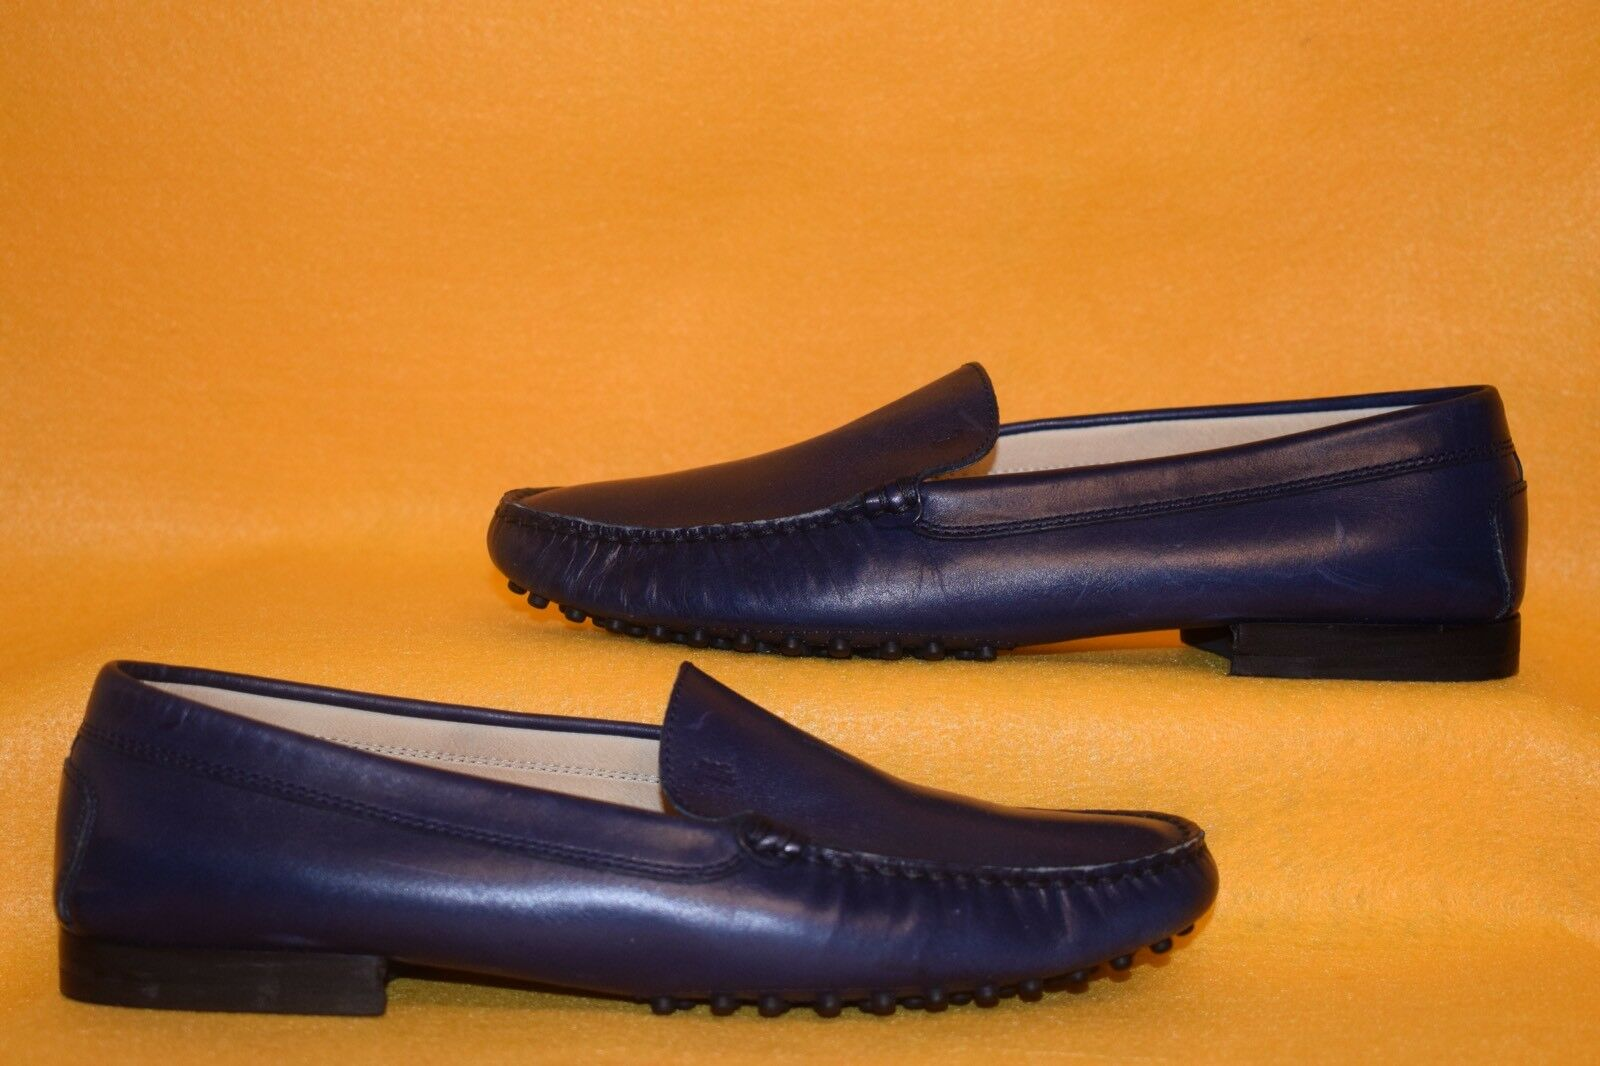 TODS Nibbed Sole Casual Dressy Loafers Blau Leather 1 4  Heel 7.5